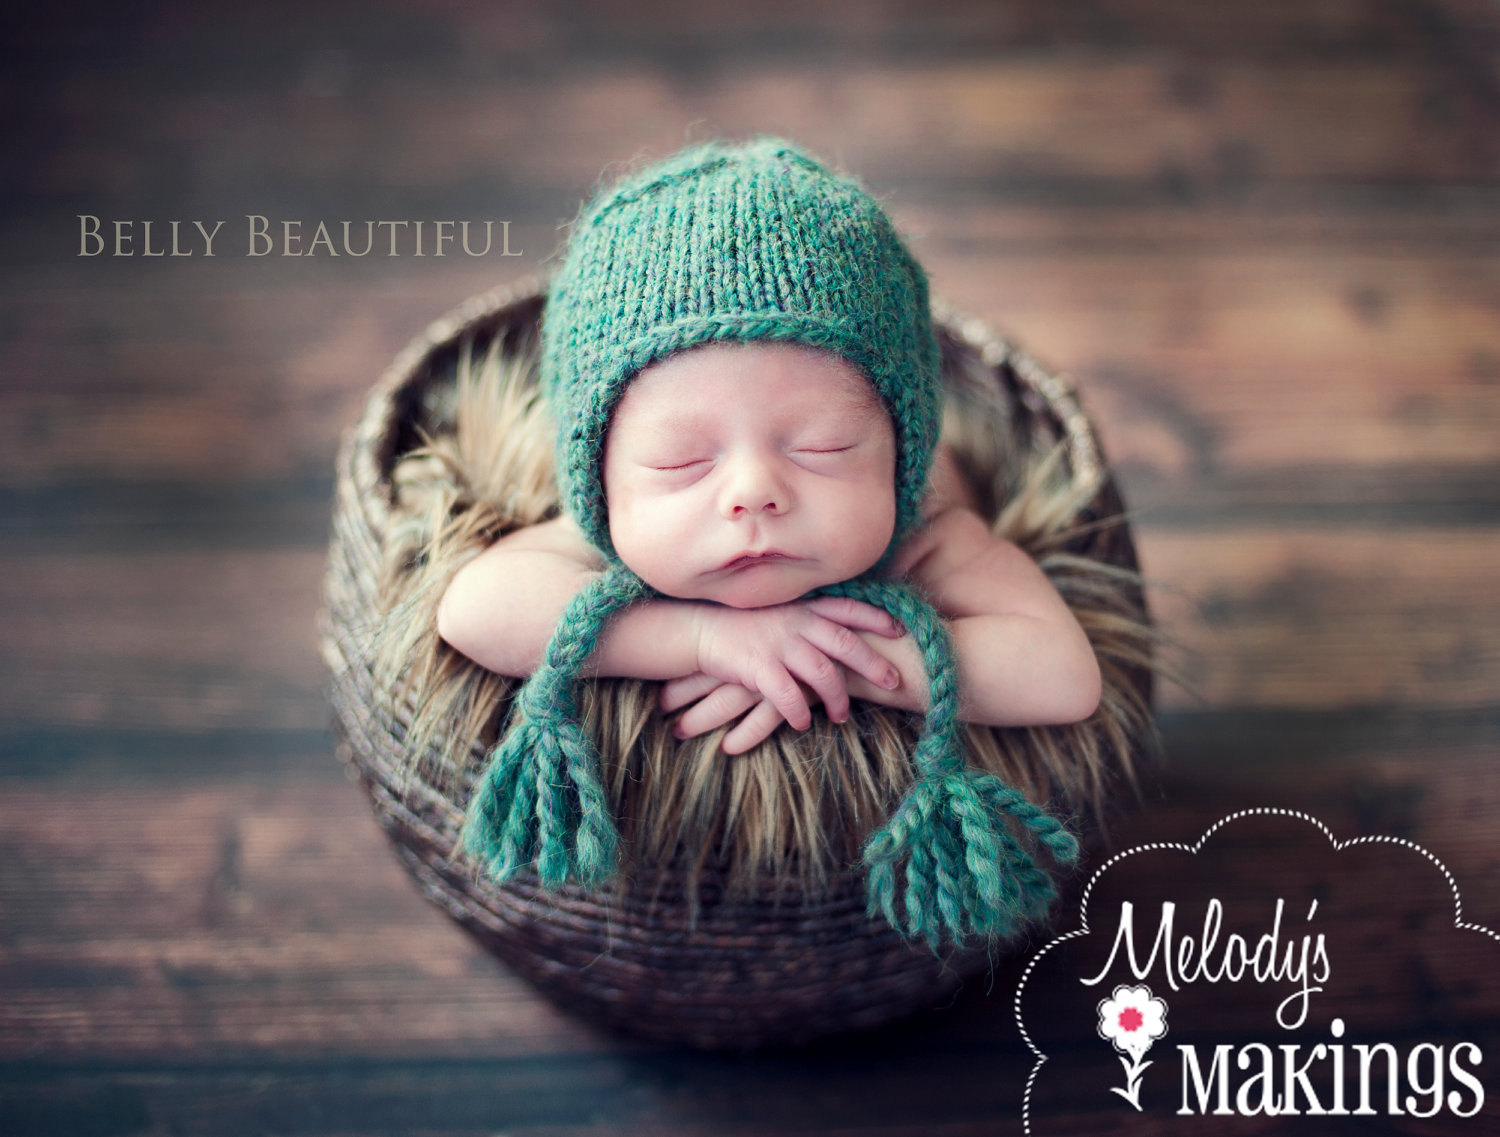 Baby Earflap Hat Knitting Pattern Cabled Earflap Hat Knitting Pattern Newborn Ba Toddler Child Teen Adult Sizes Instant Digital Download